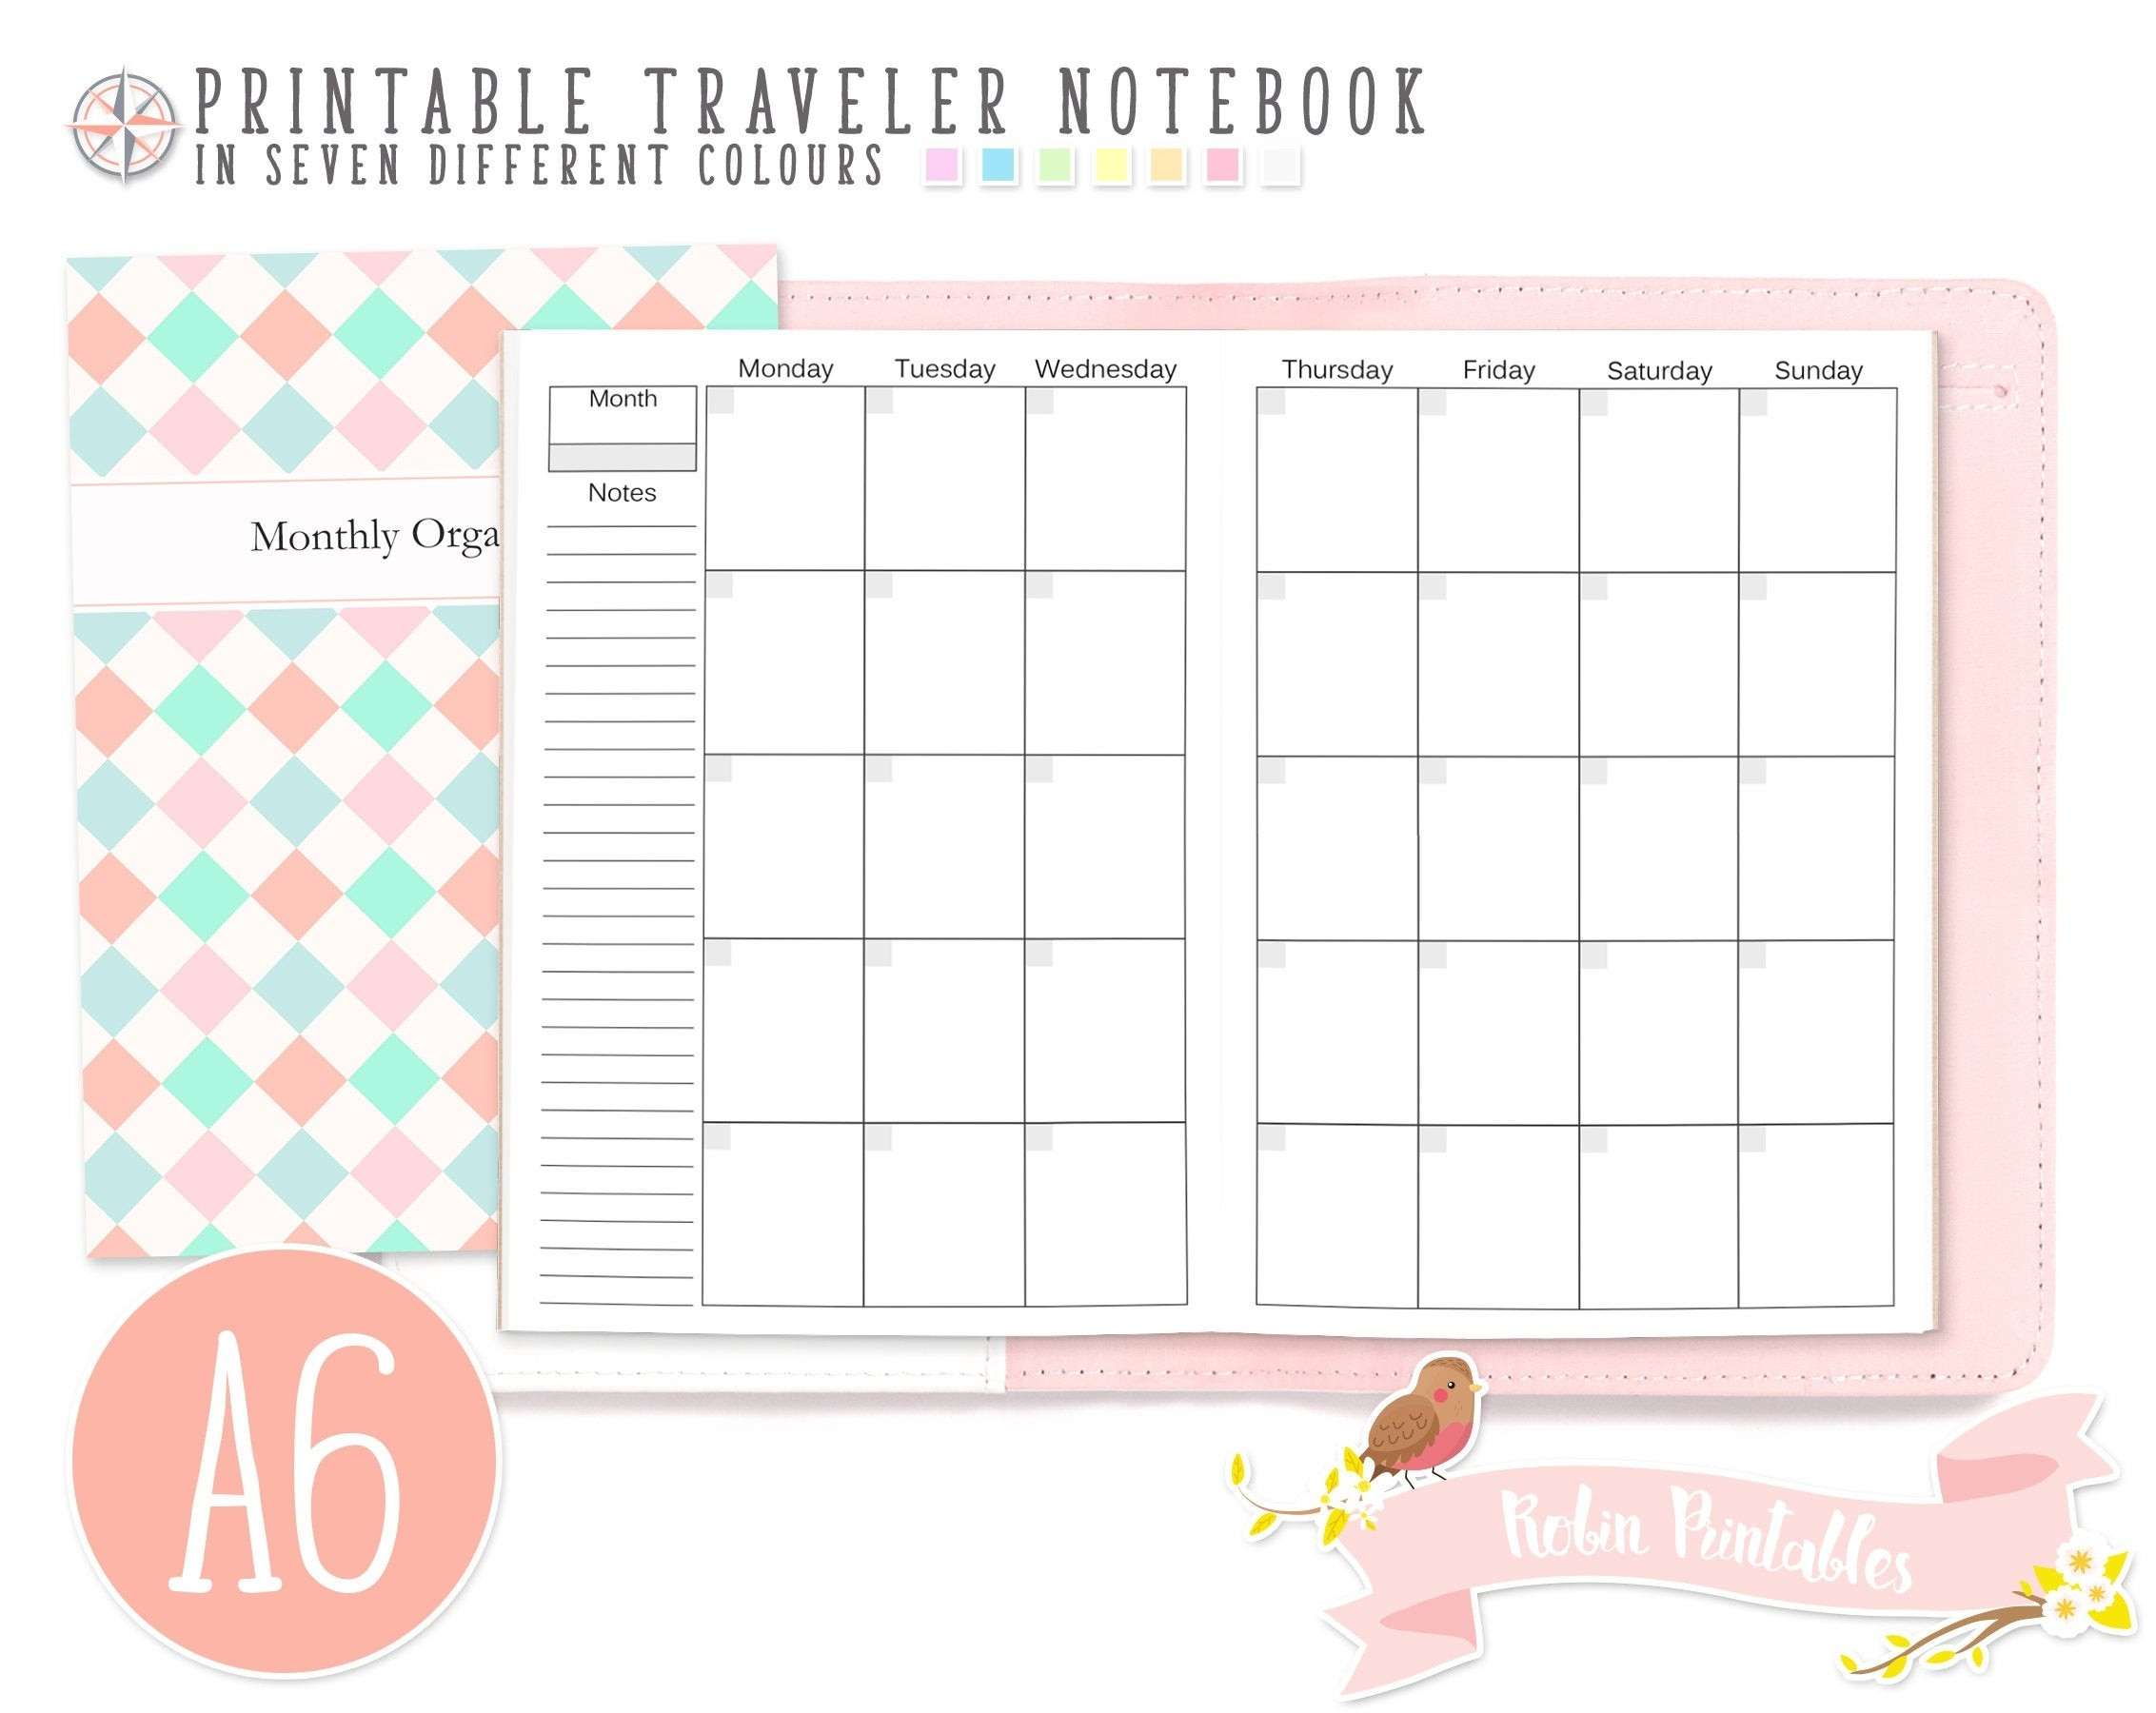 A6 Monthly Organizer Traveler Notebook Refill 4 X 6 Printable Tn Pdf  Download For Personal Use Month Planner, Schedule, Monthly Plan Inserts-4X6 Monthly Printable Planner Calendar